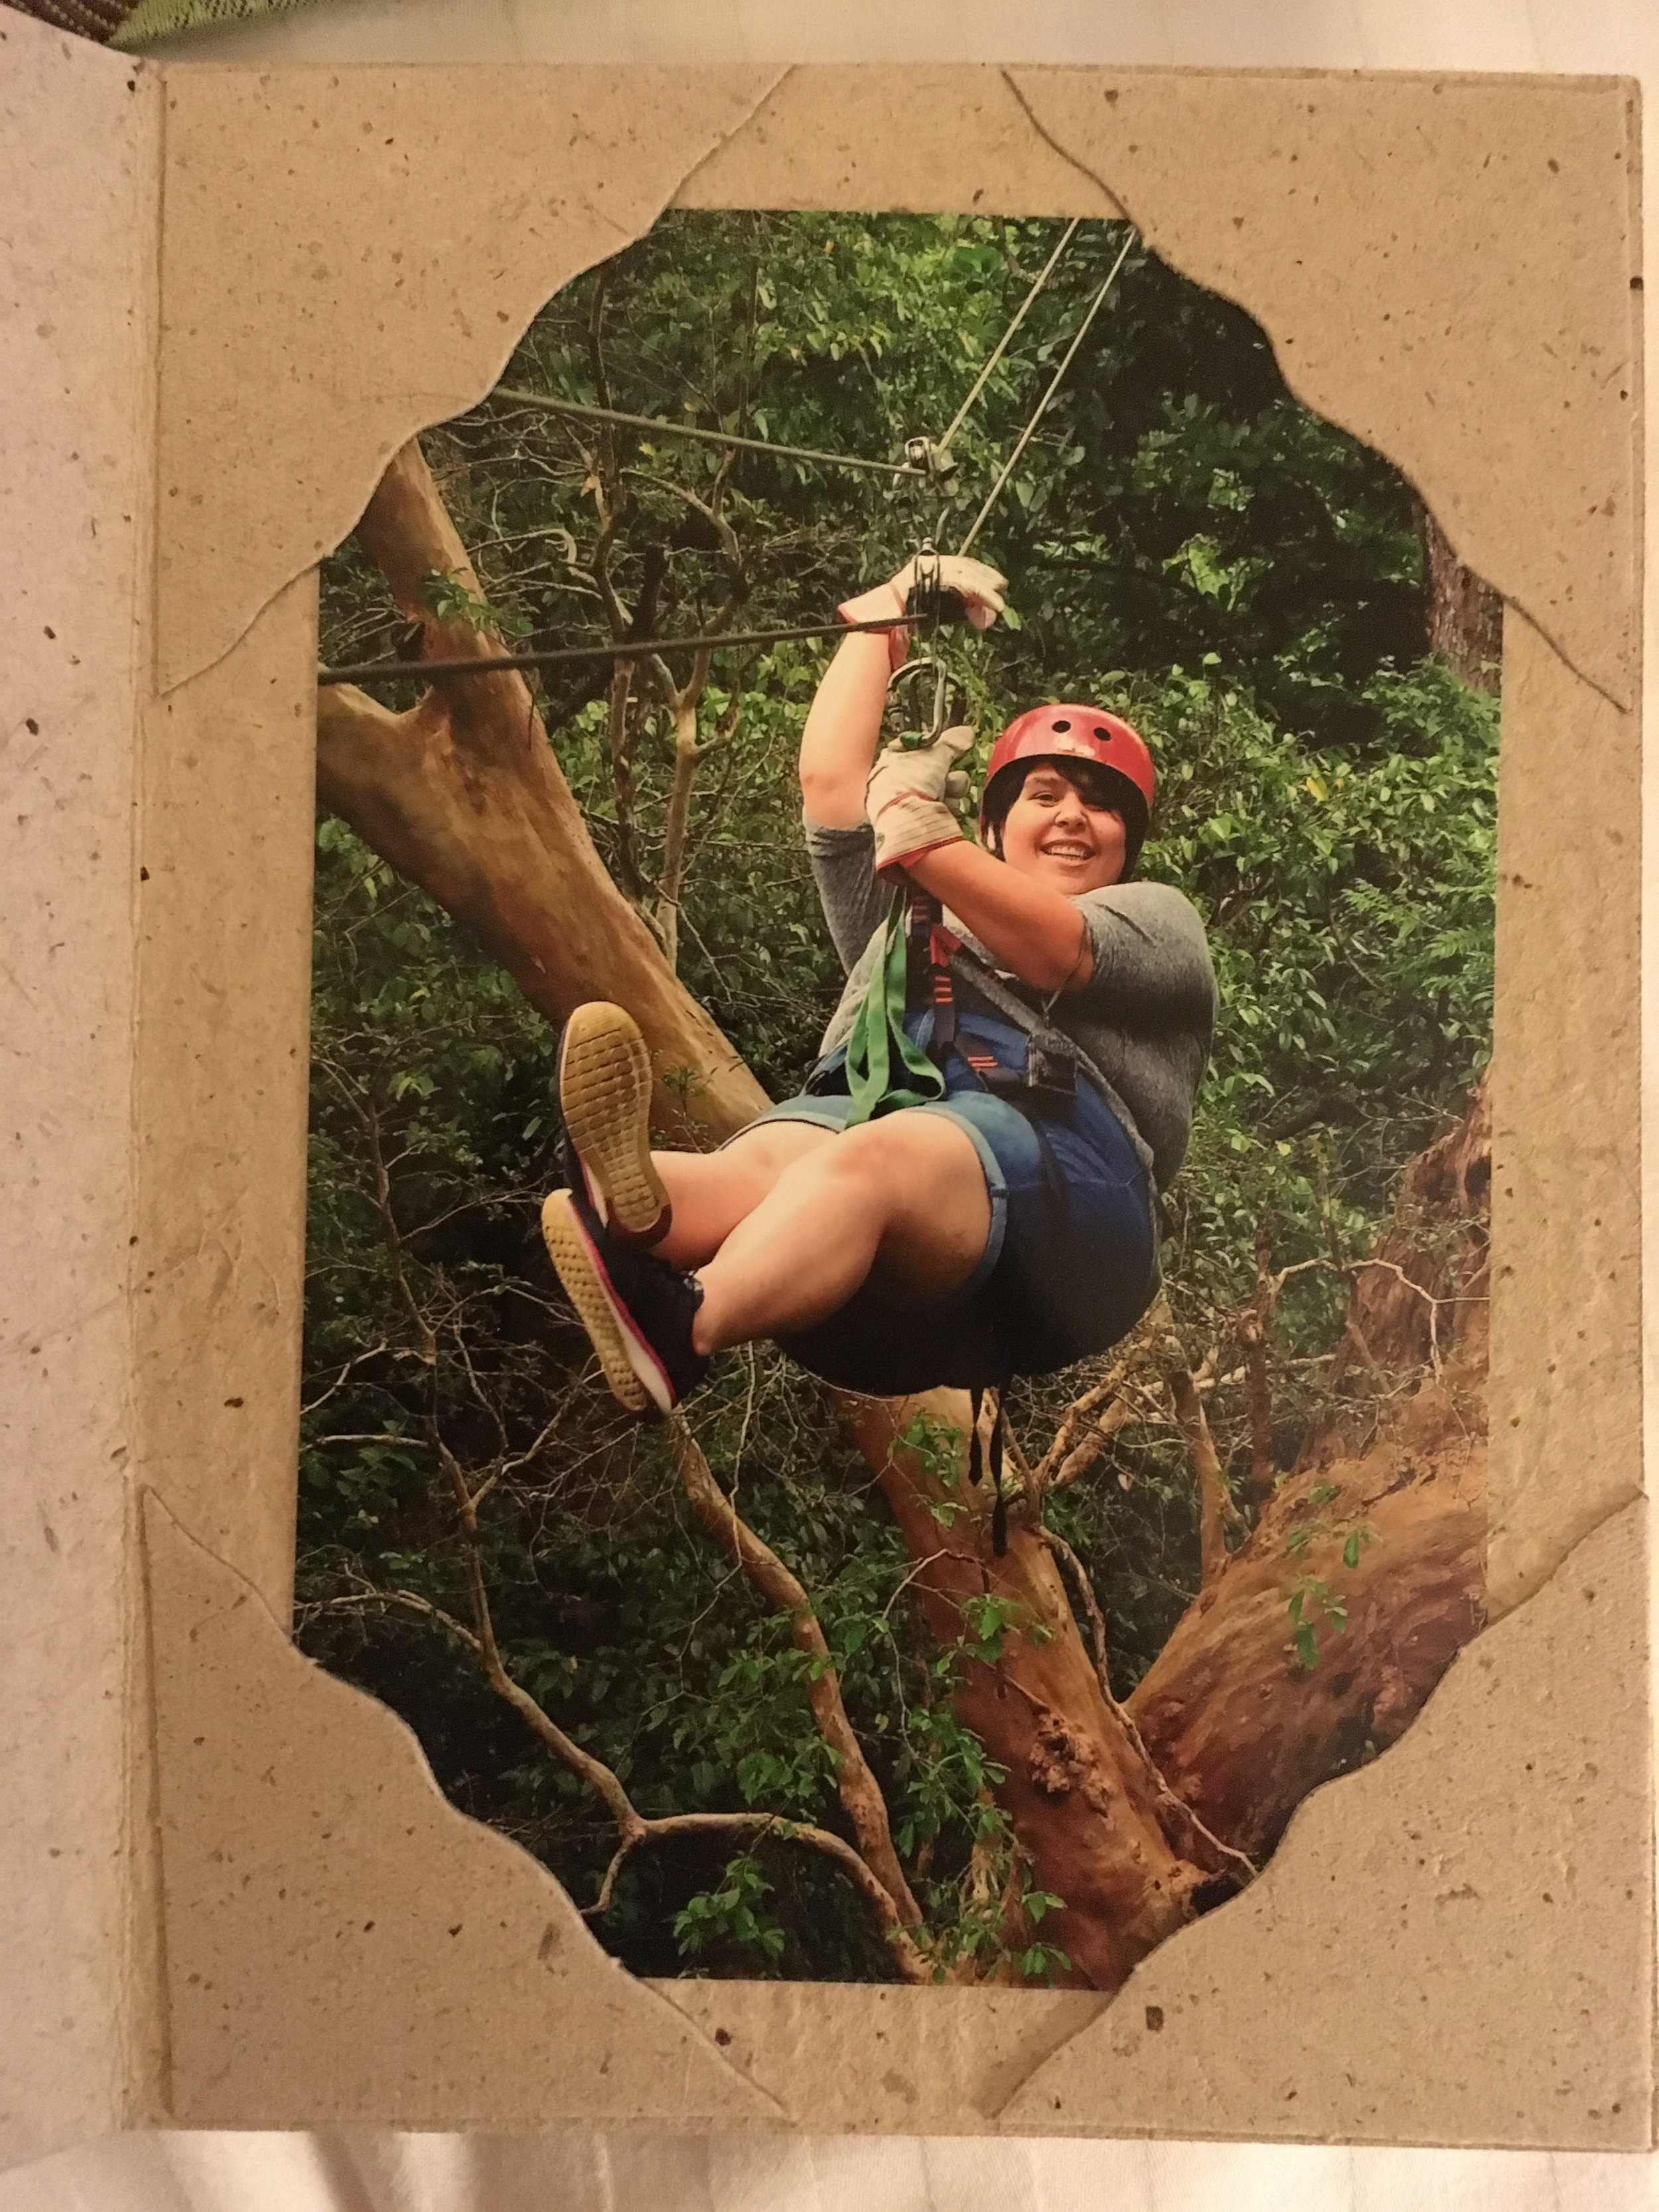 Zip-lining through the rain forest? YES PLEASE